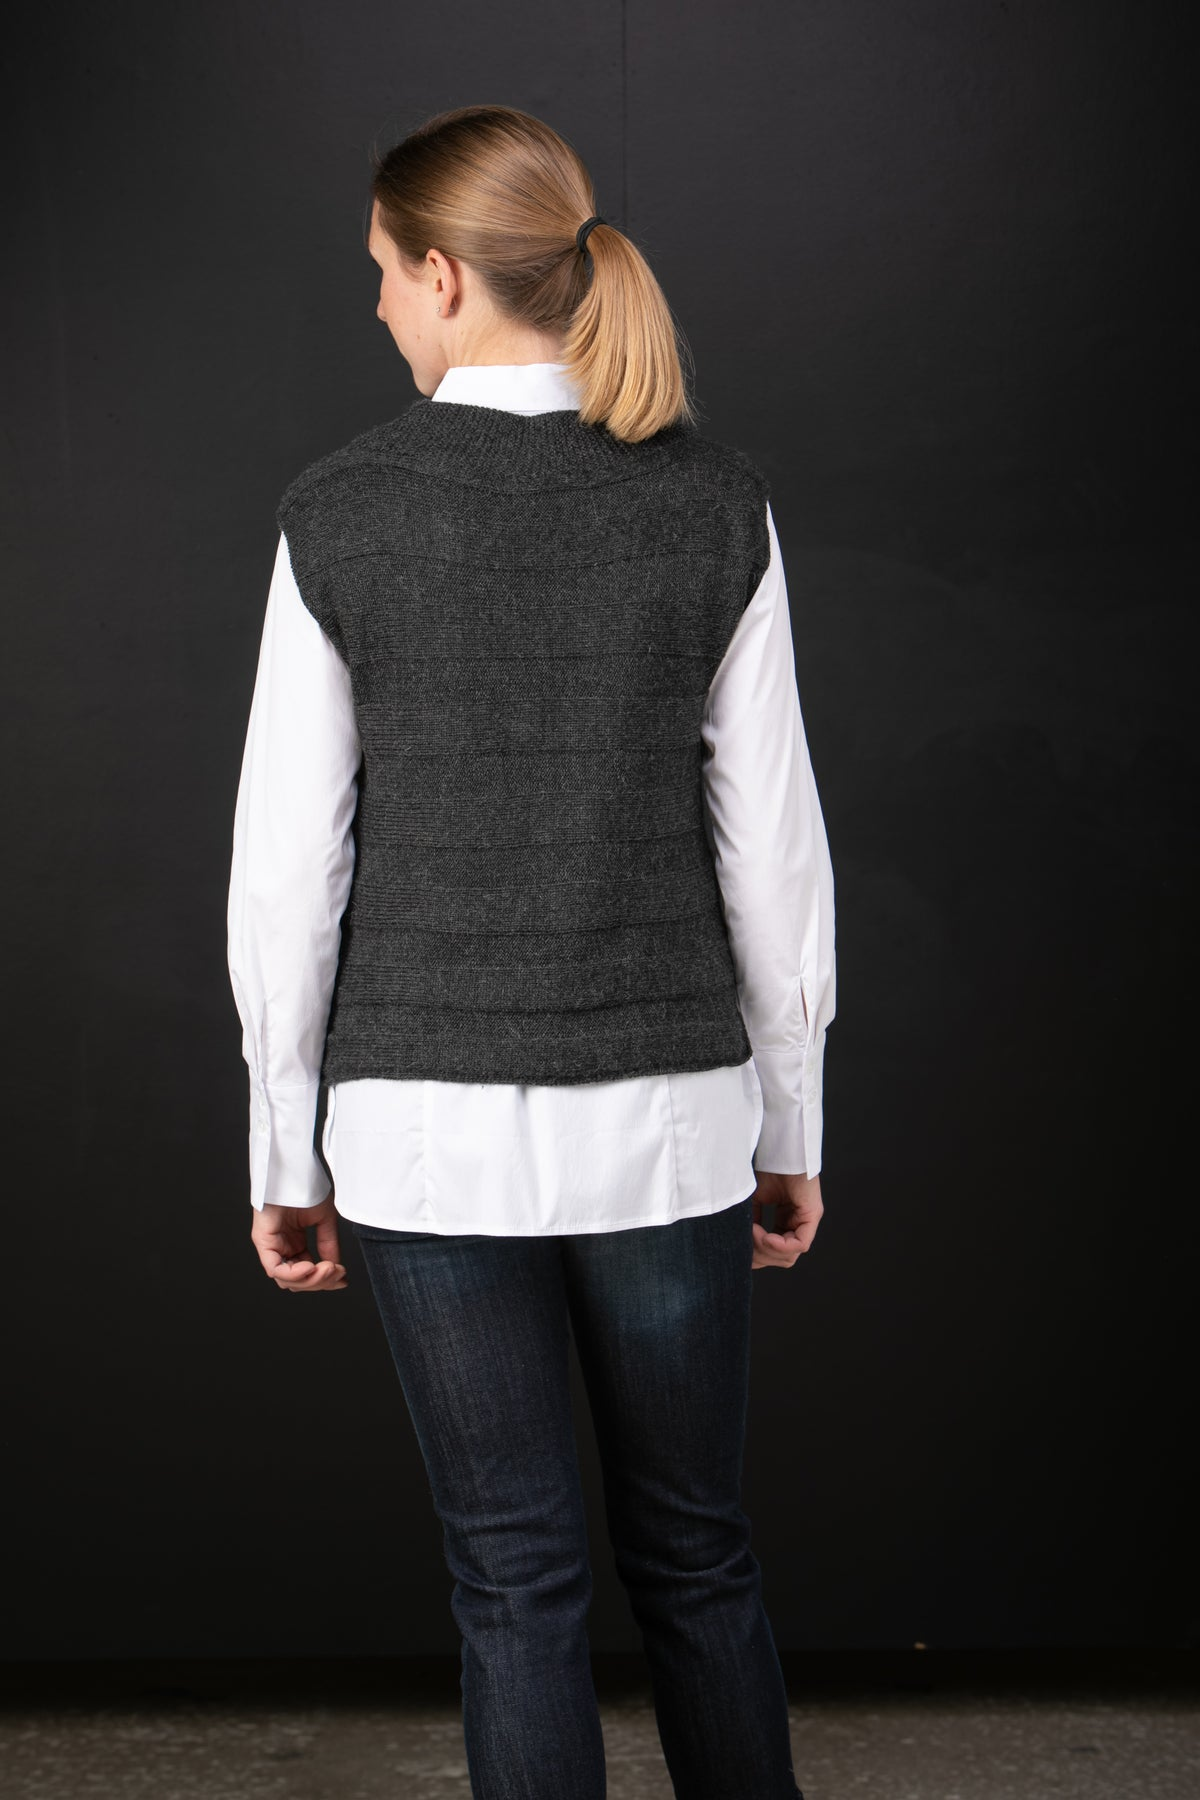 Chiri Ida baby alpaca pullover vest in Night - back view